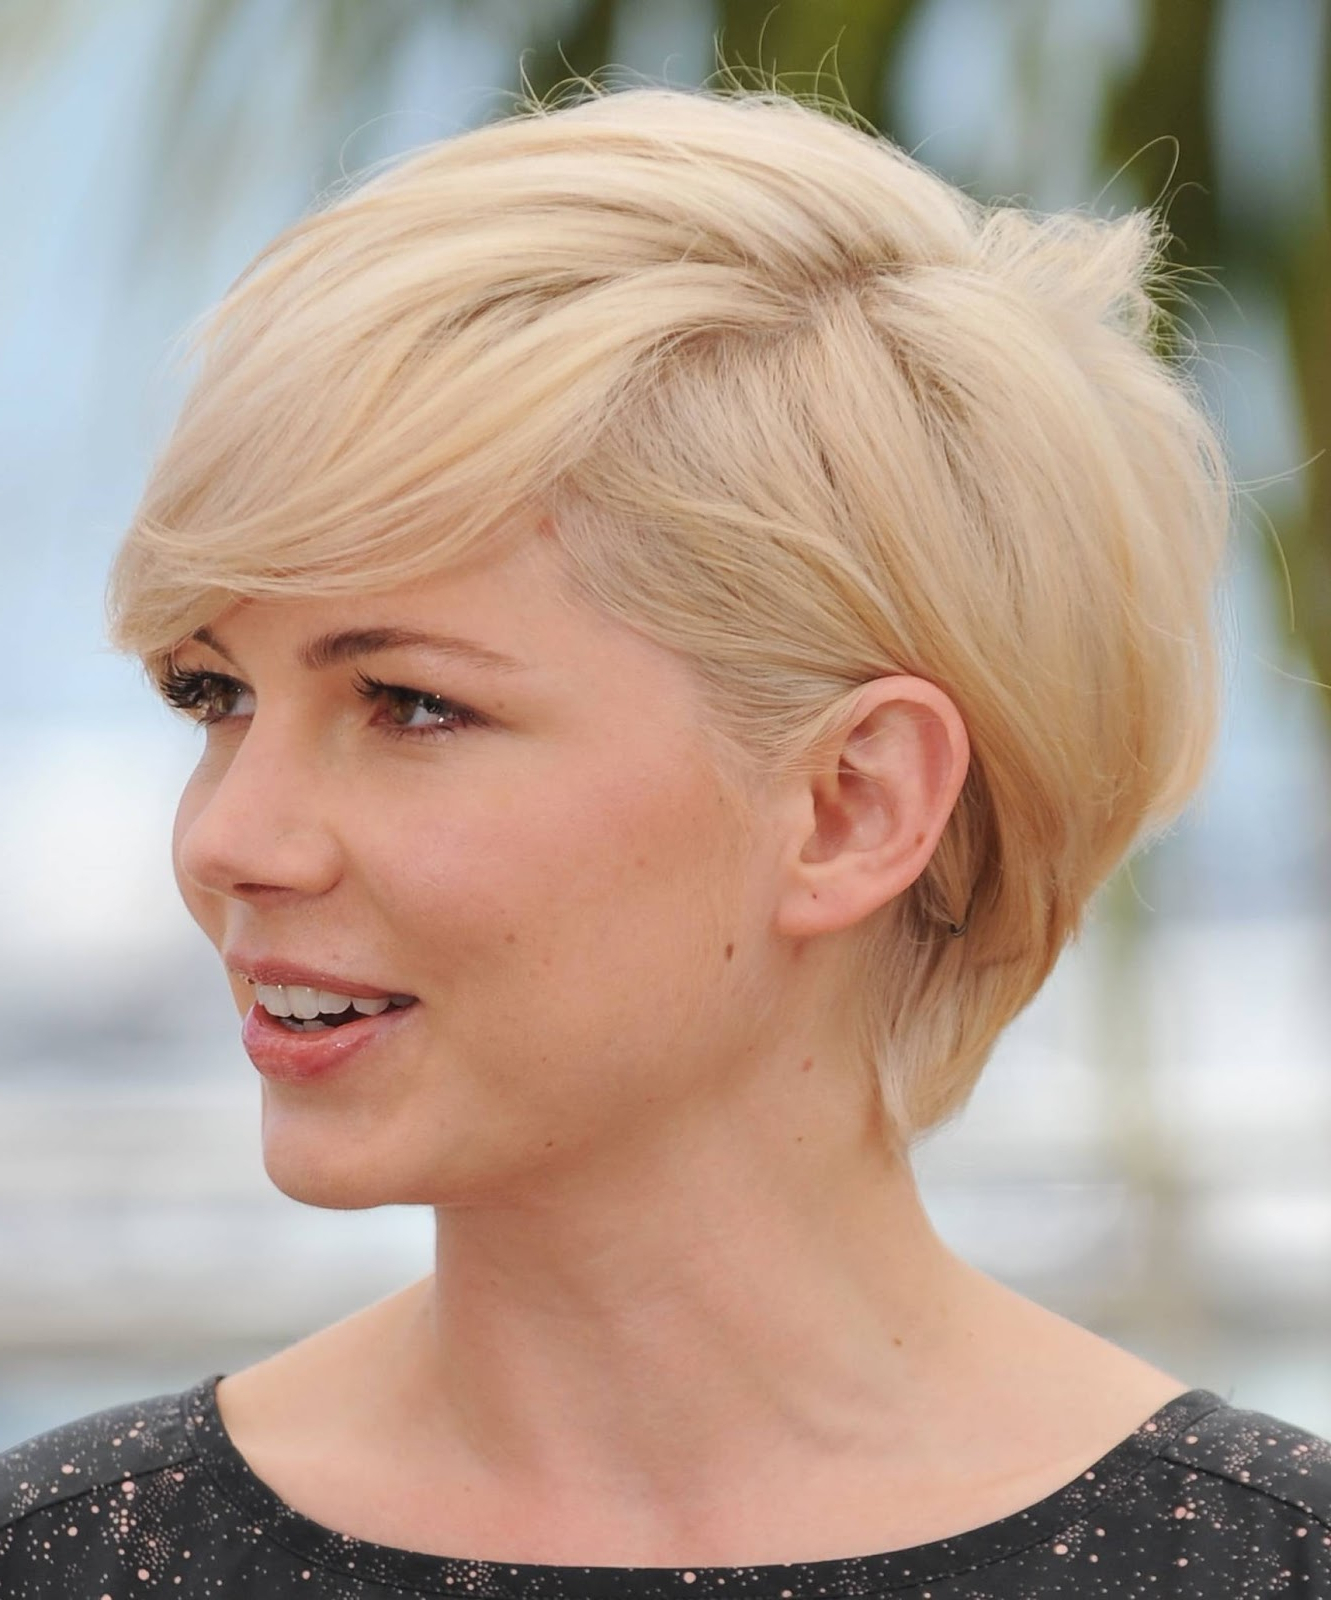 Hair Styles Ideas In Short Blonde Styles (View 10 of 25)